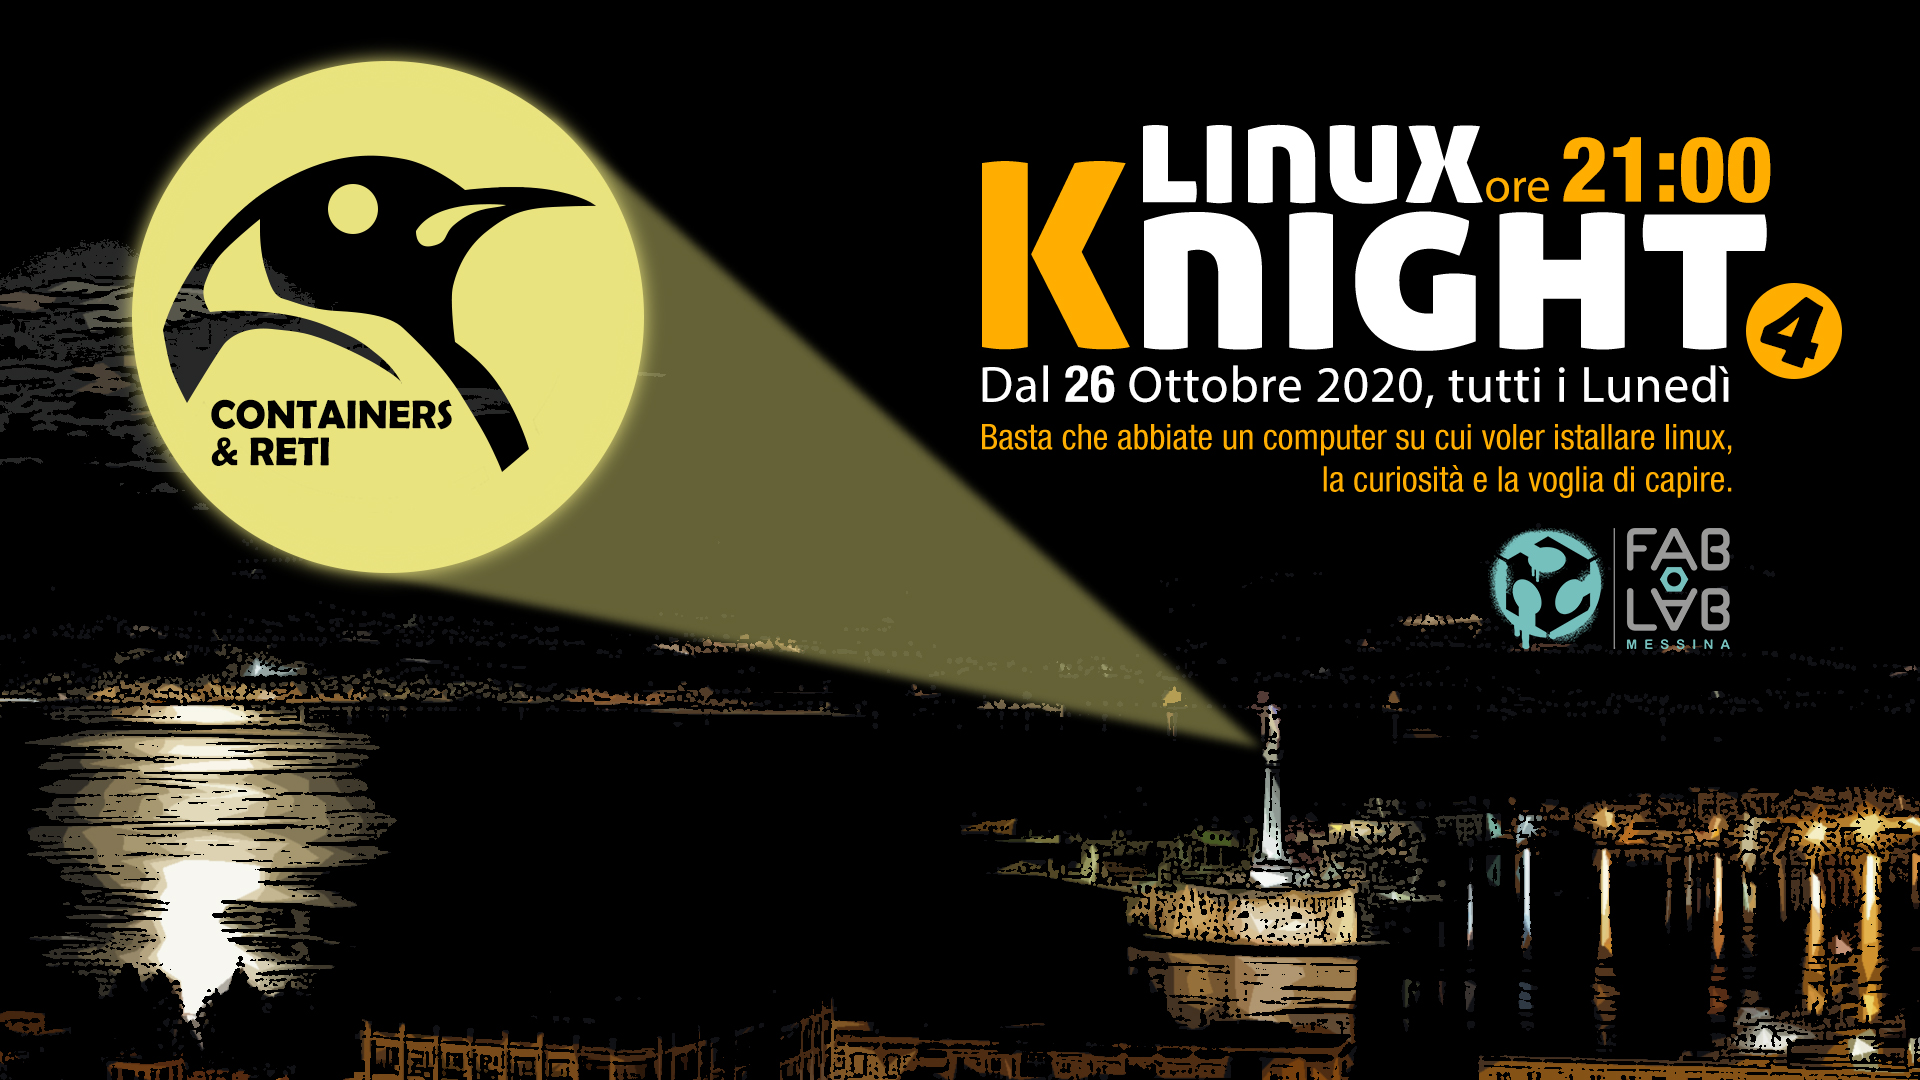 Linux kNight 4